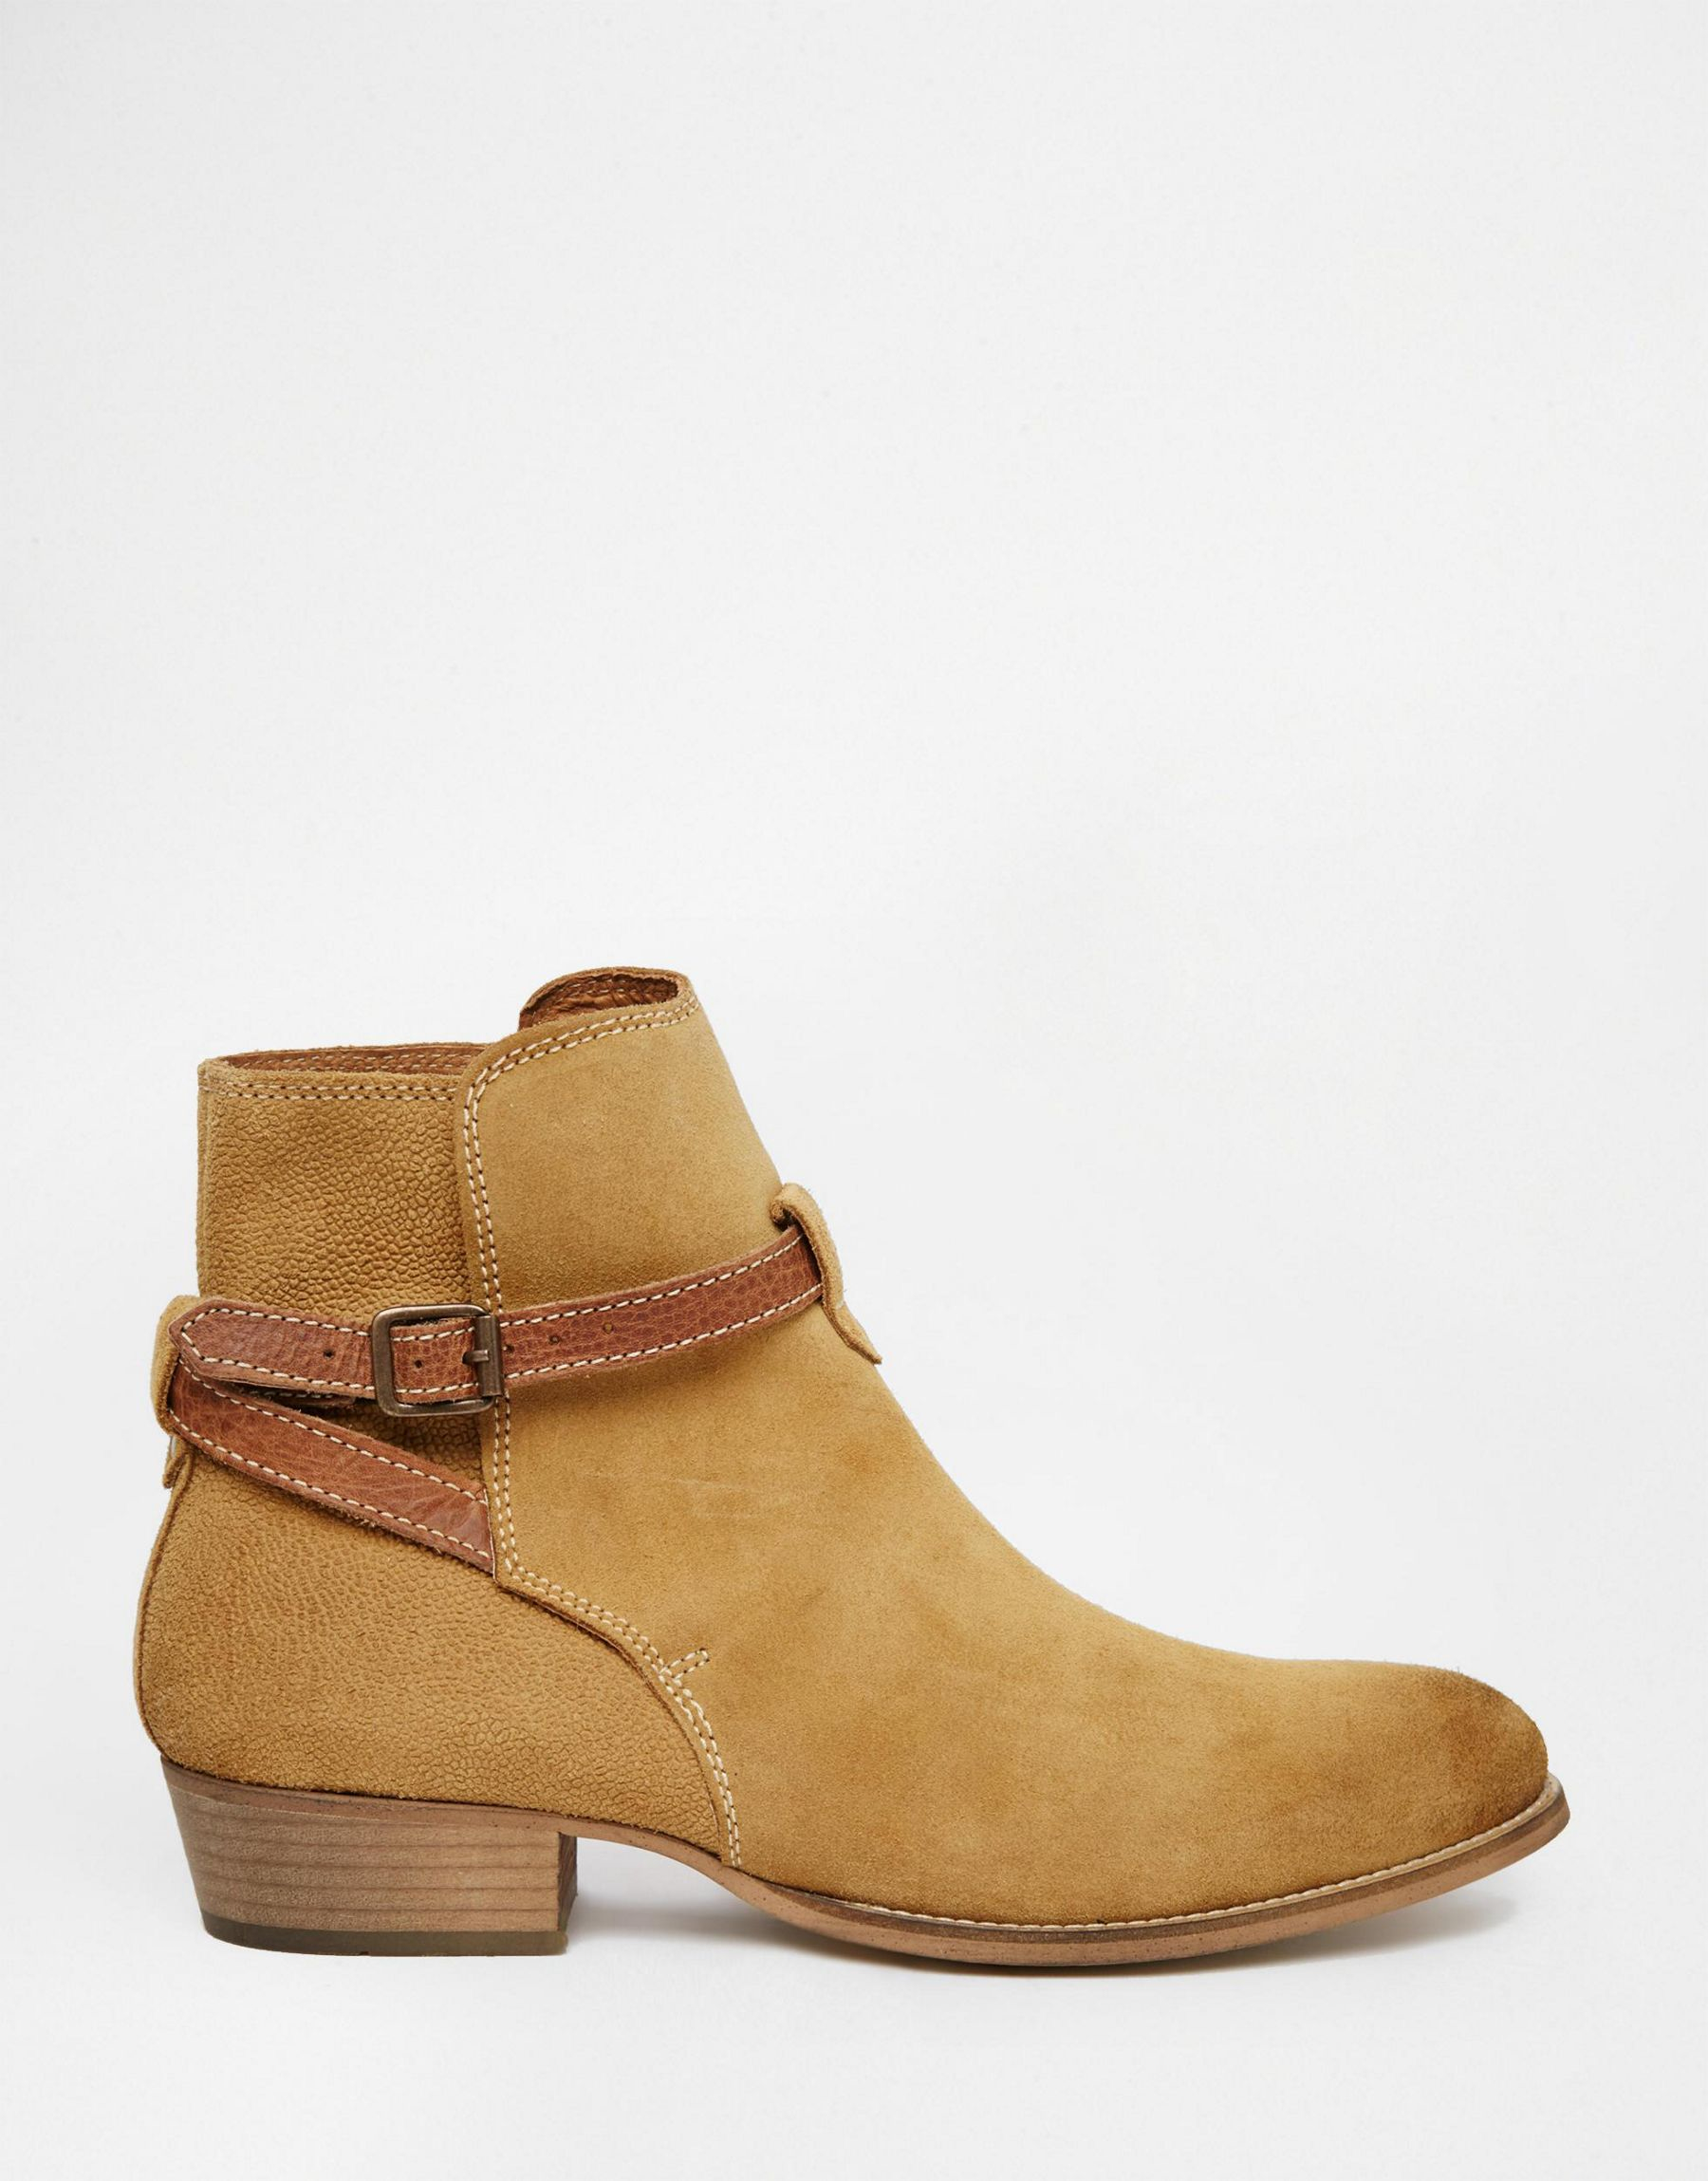 House Of Hounds Adrian Suede Buckle Boots In Tan - Tan House Of Hounds For Sale Very Cheap Cheap Sale Outlet Quality Free Shipping Low Price Factory Price 4YryVisE